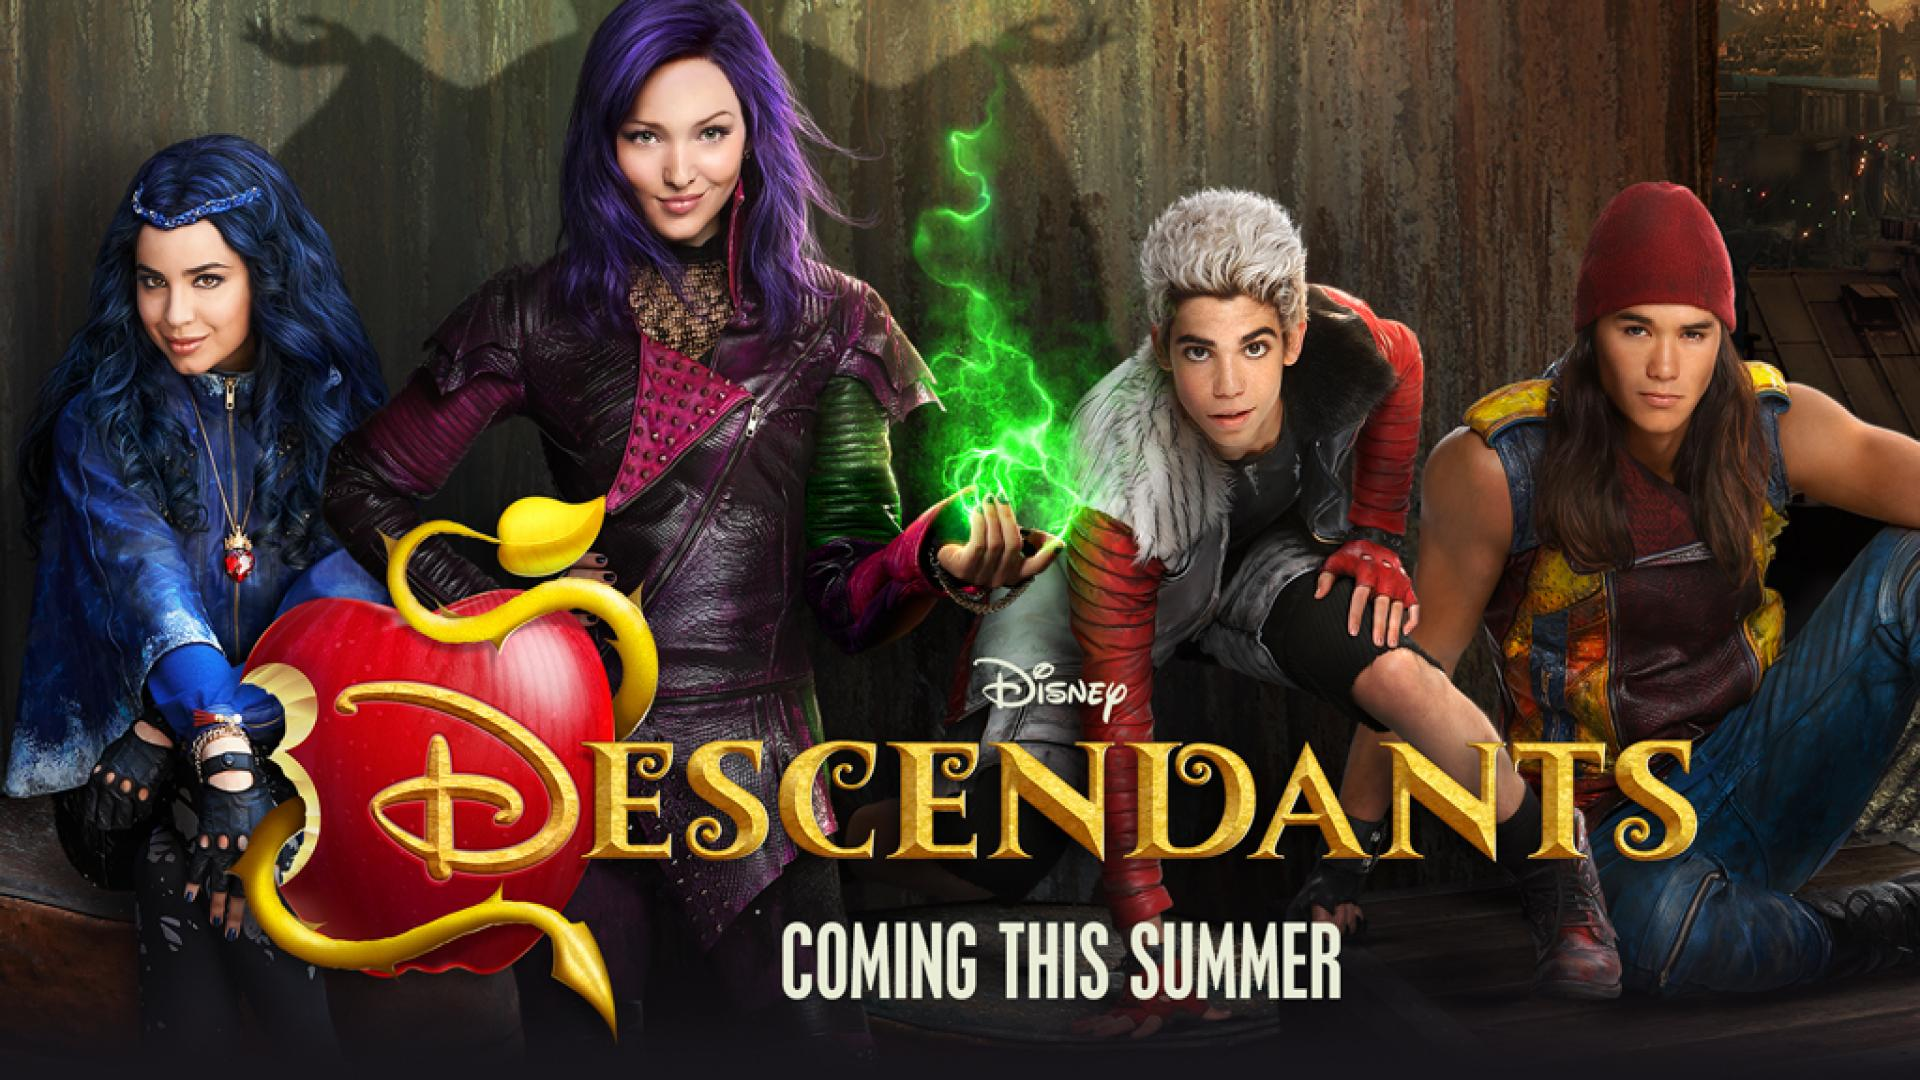 Descendants Disney Movie Wallpaper Disney Descendants 1 375443 Hd Wallpaper Backgrounds Download